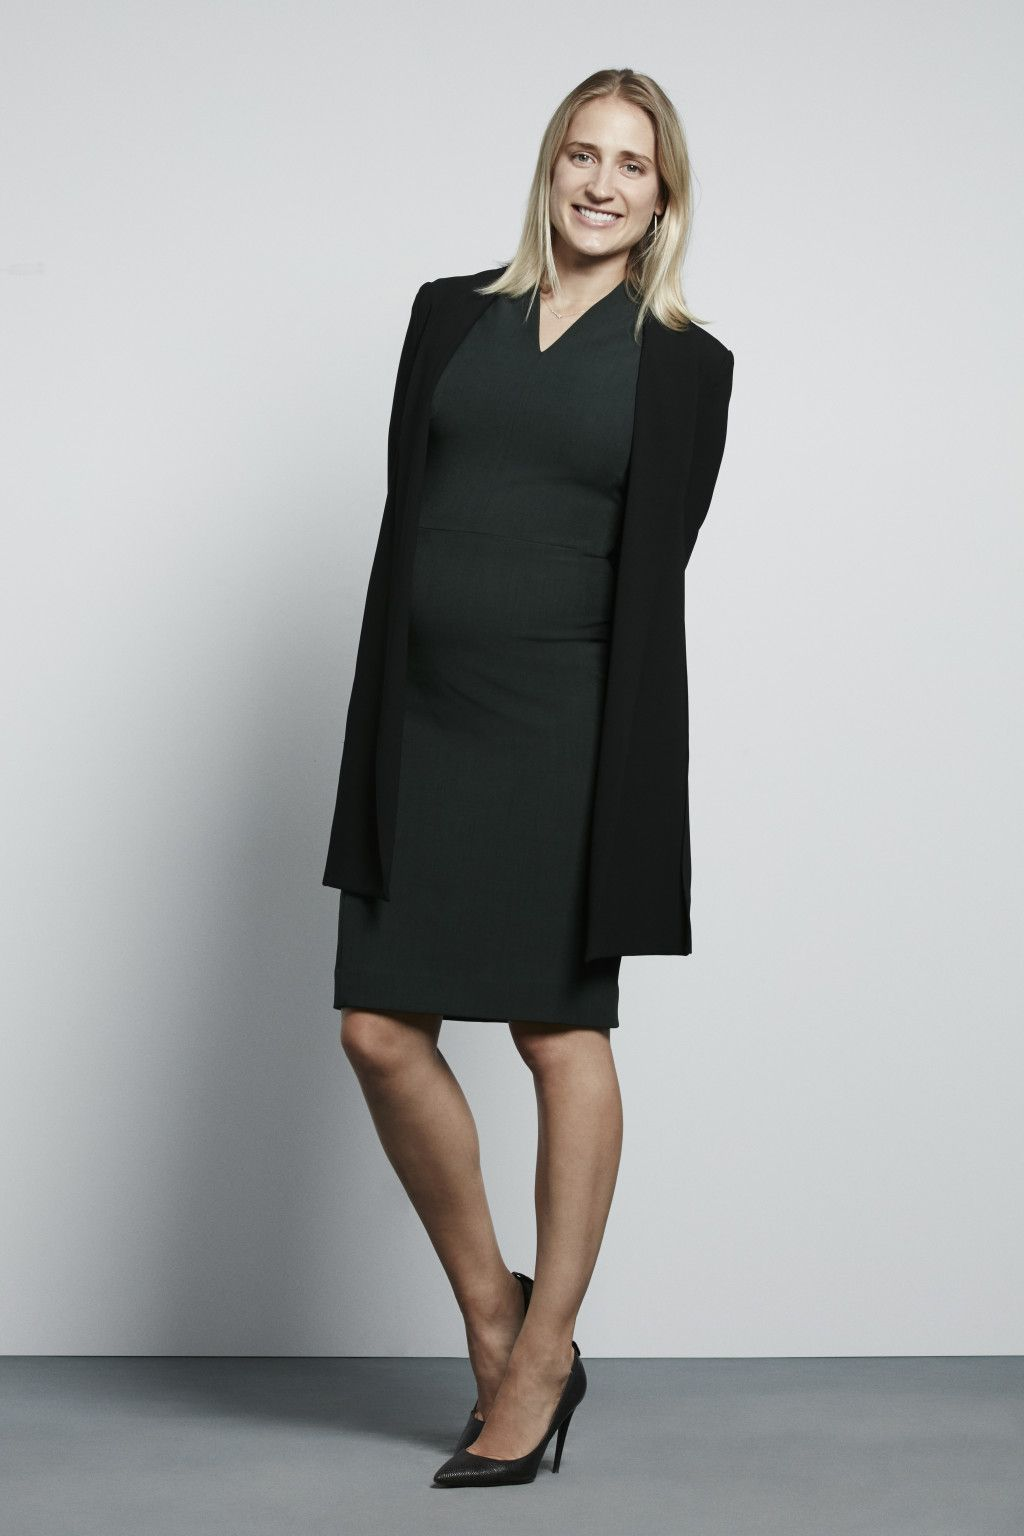 Pin On Maternity Friendly Work Style